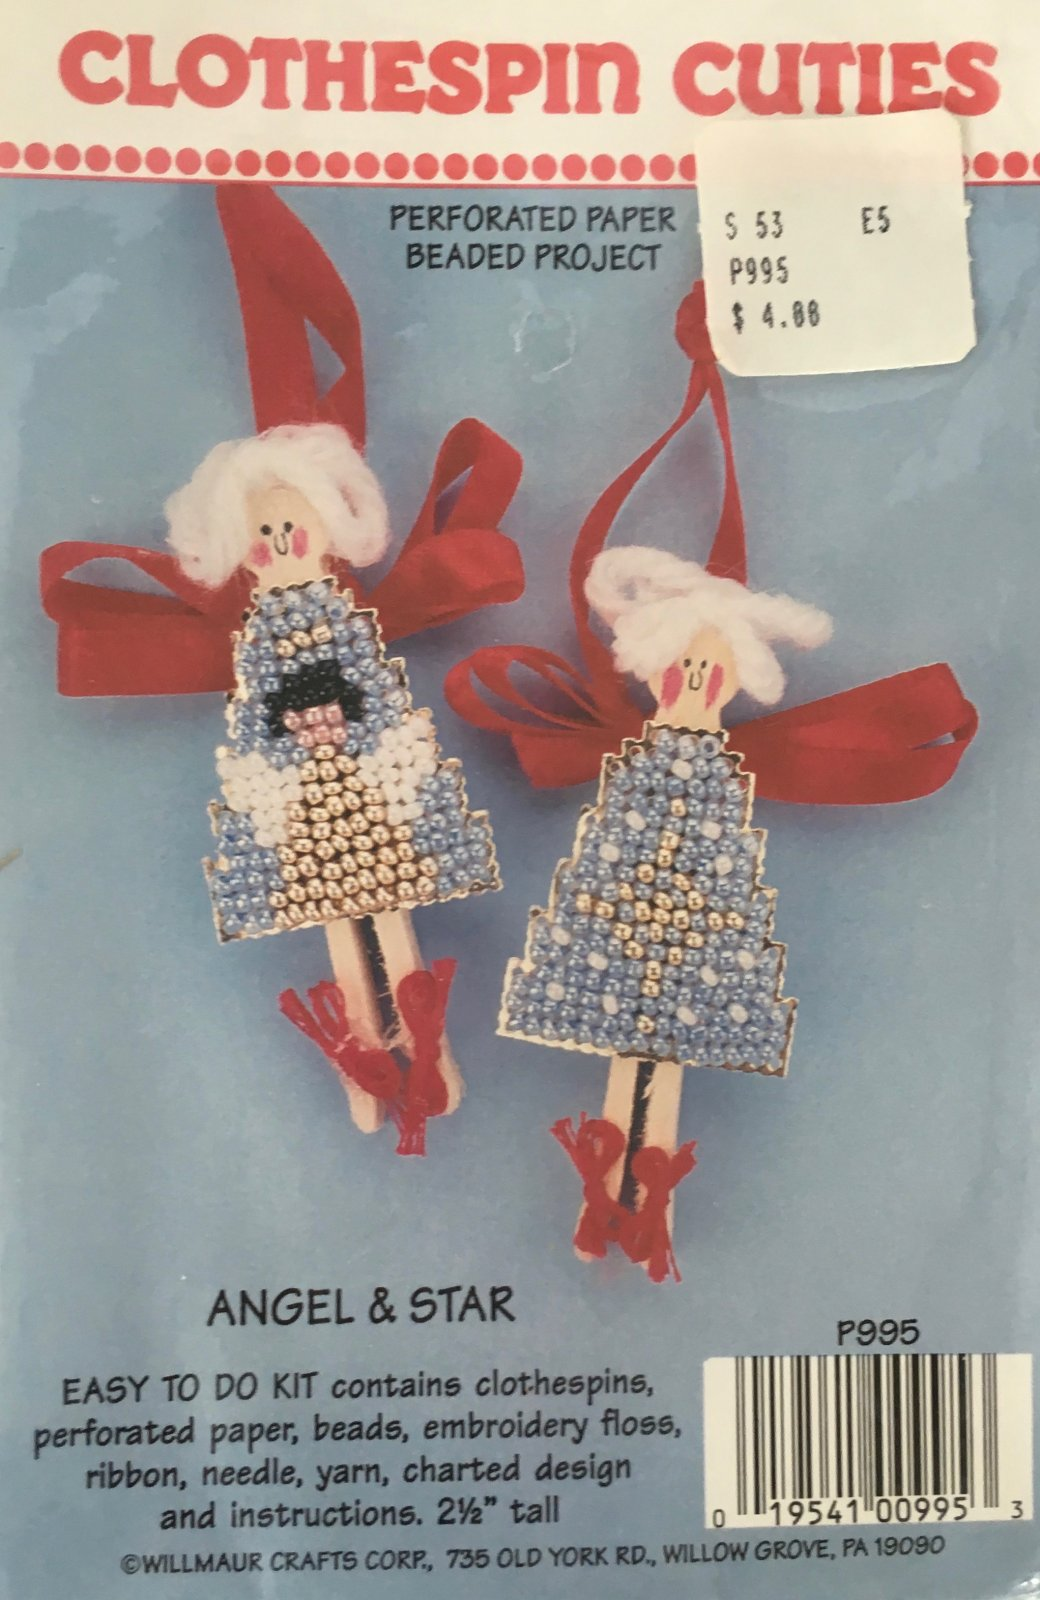 Astor Place: Clothespin Cuties Angel & Star Kit P995